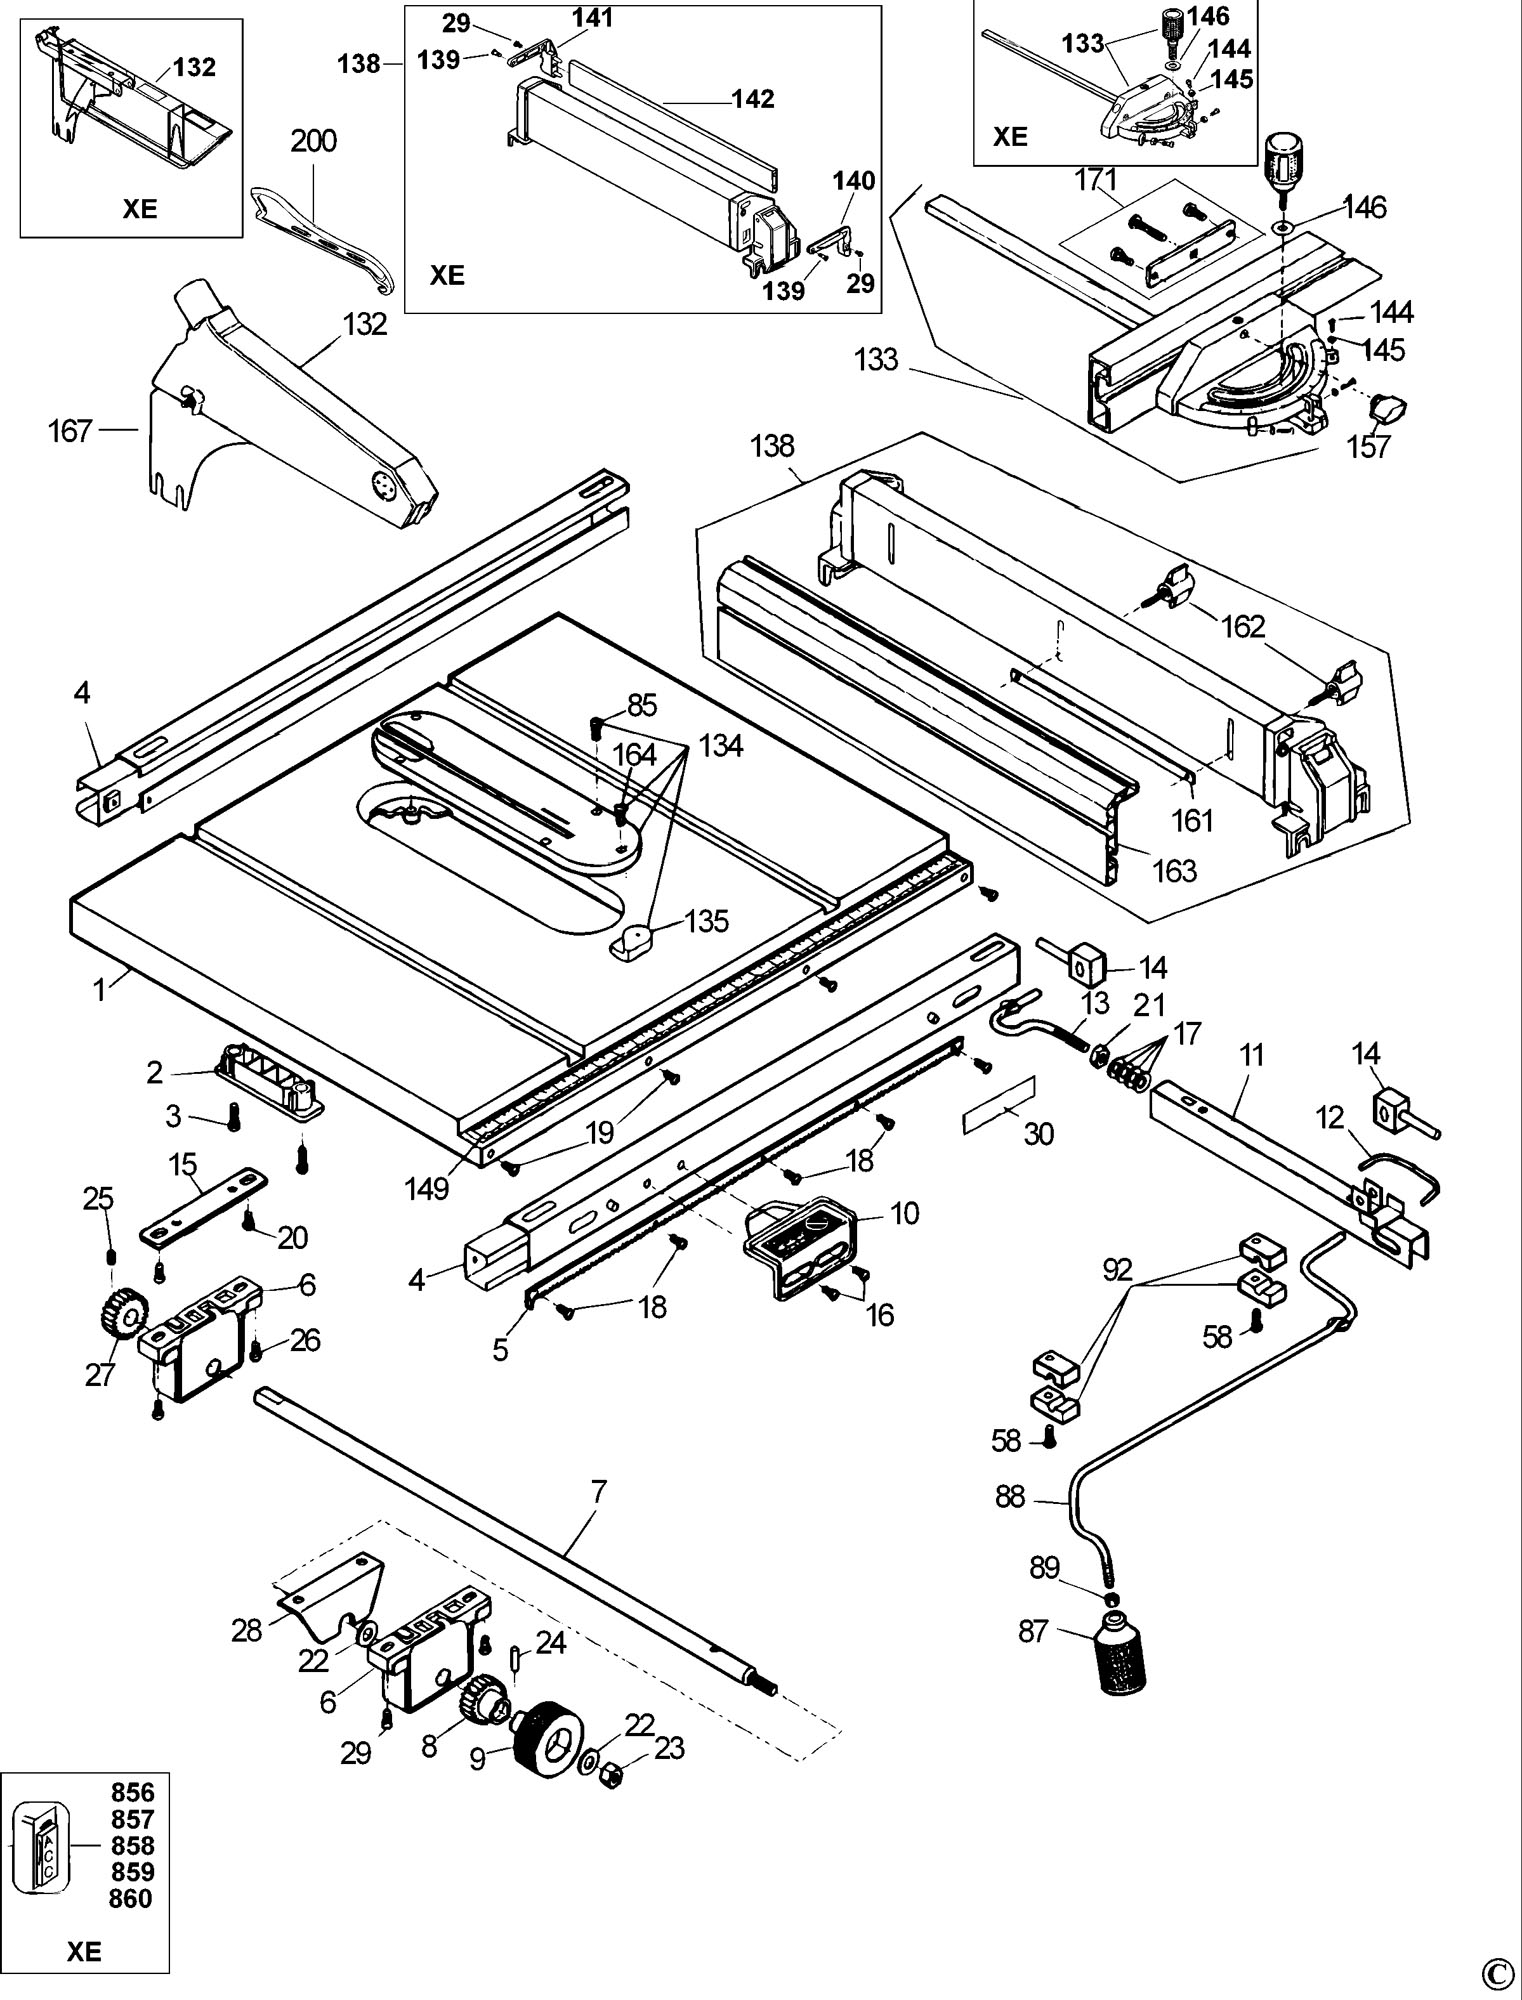 Makita Table Saw 2014 | Wiring Diagram Database on cub cadet switch wiring, ridgid switch wiring, ariens switch wiring, rigid switch wiring, murray switch wiring, john deere switch wiring, campbell hausfeld switch wiring, kohler switch wiring, snapper switch wiring, cooper switch wiring,